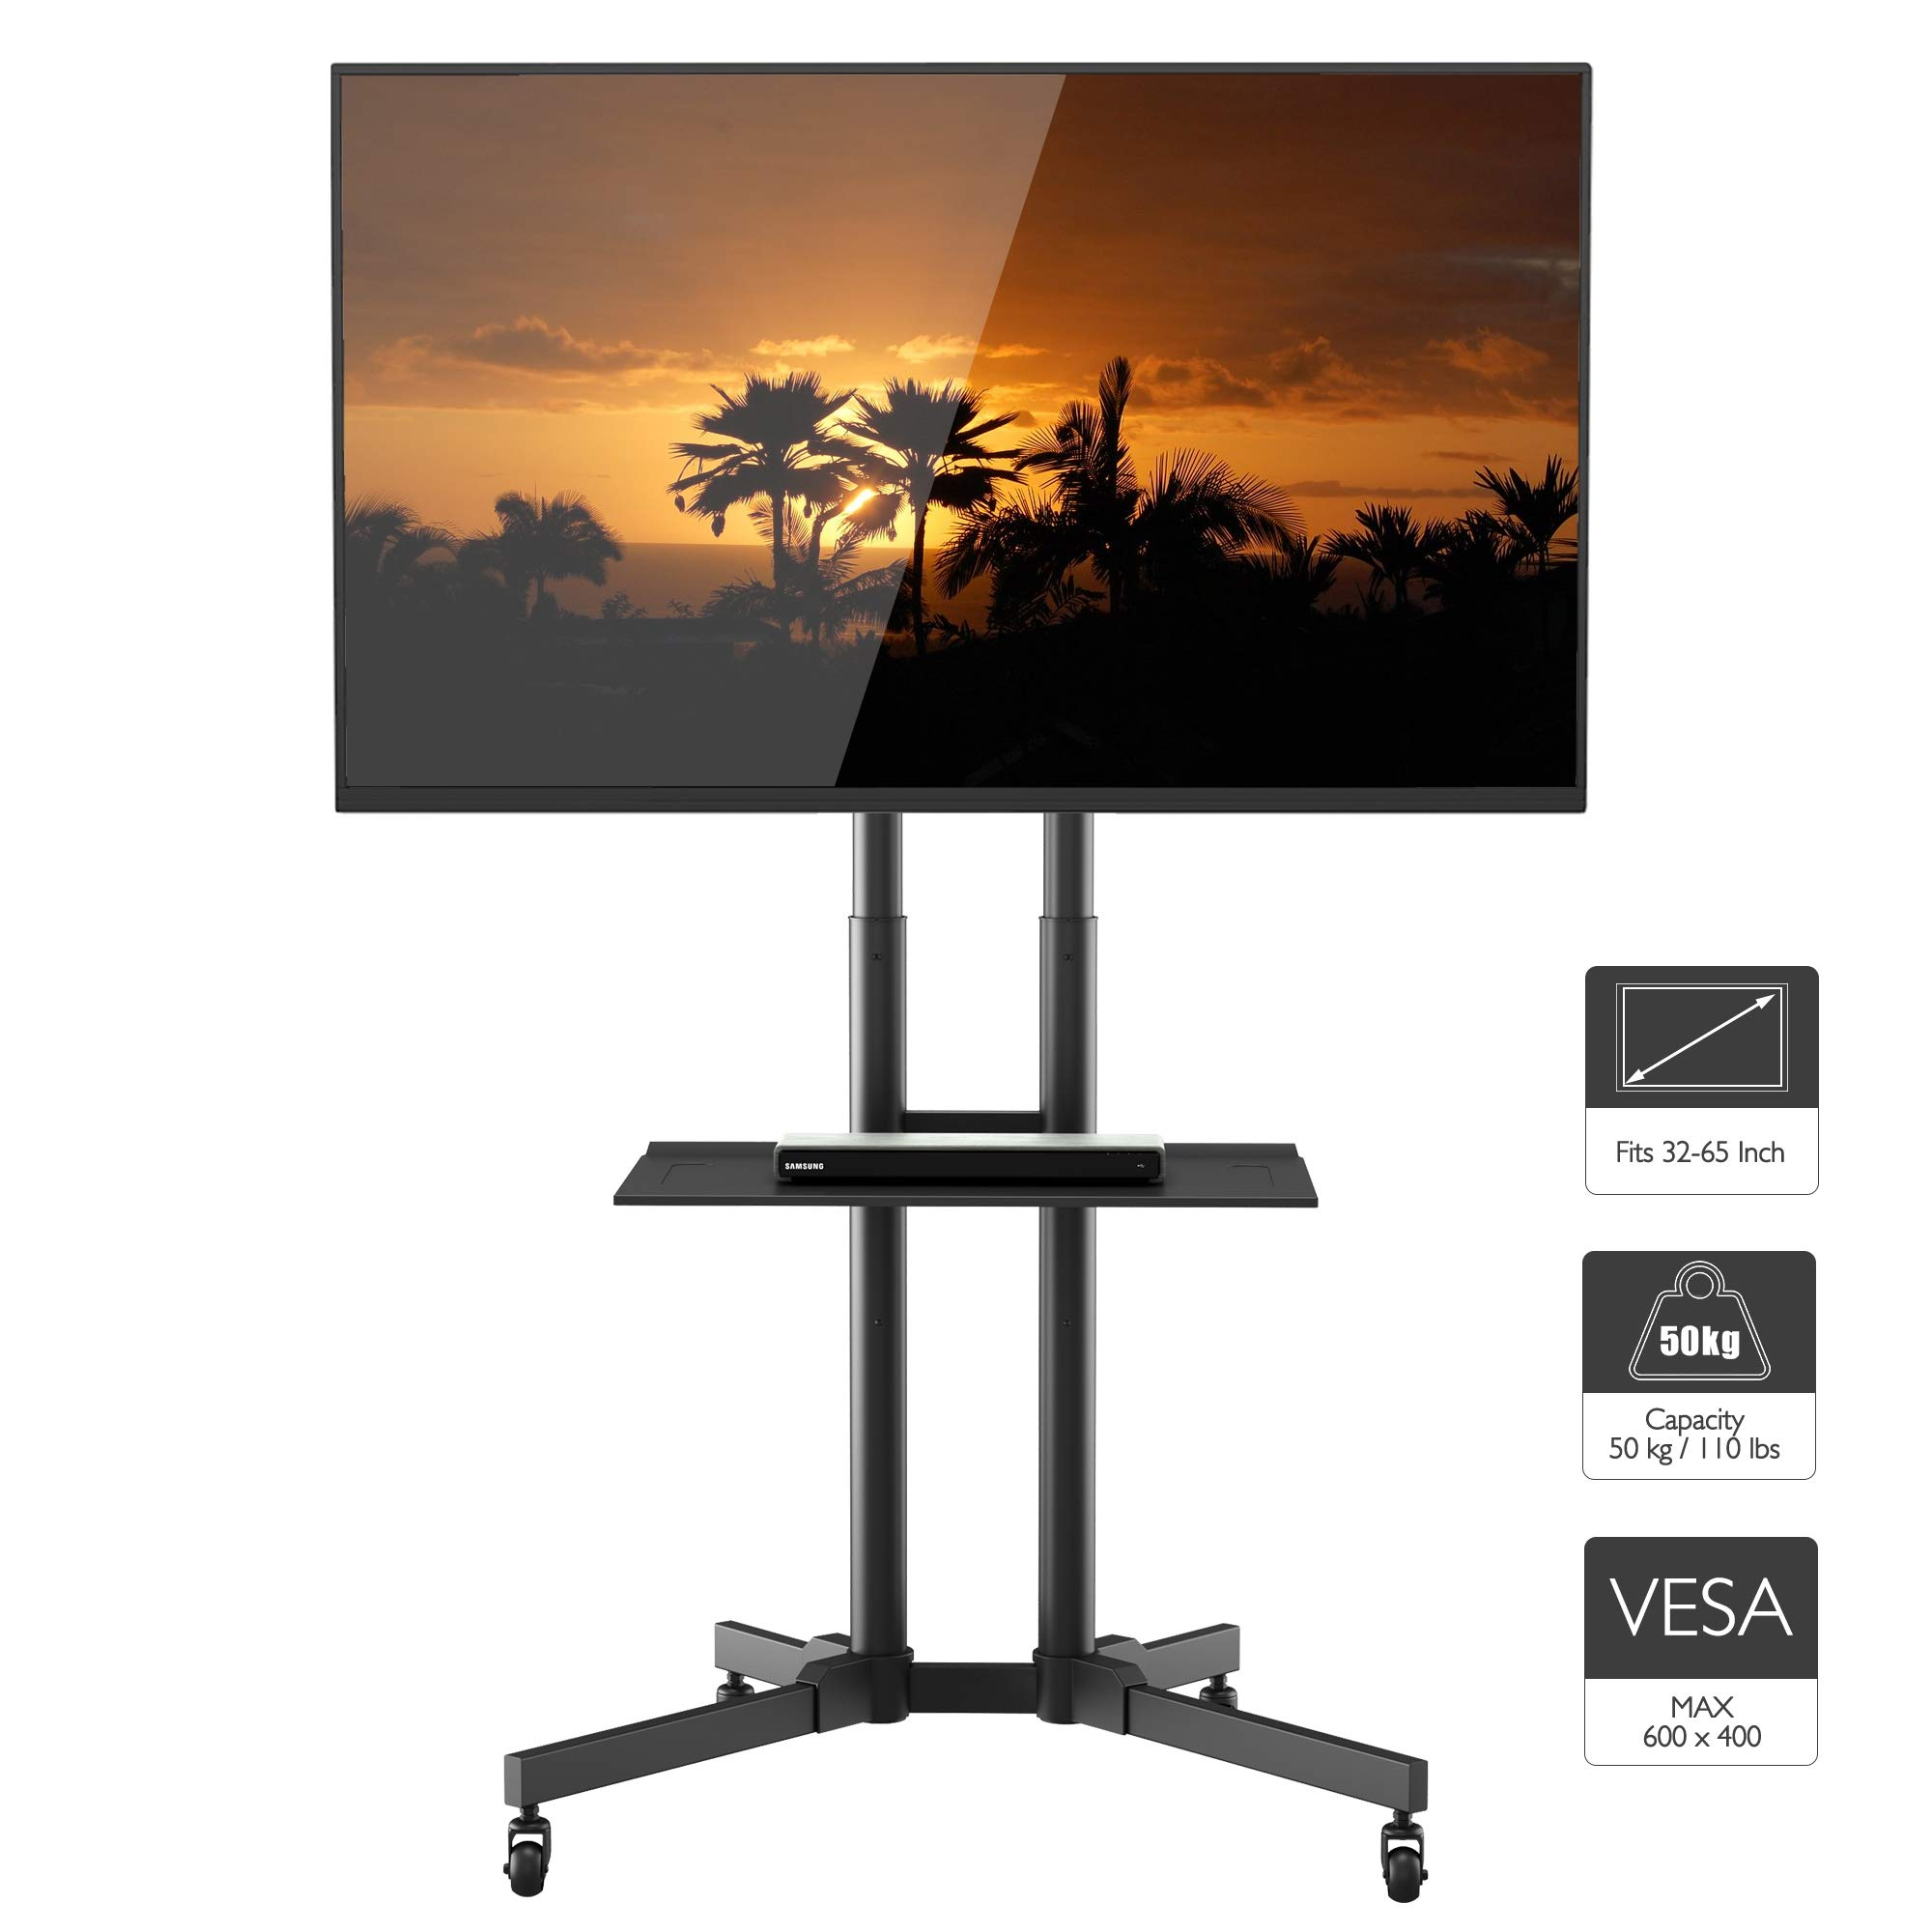 1home Rolling TV Cart Mobile TV Stand with Wheels for 32 to 65 inch LCD LED Plasma Flat Panel Screen Height Adjustable, Black by 1home